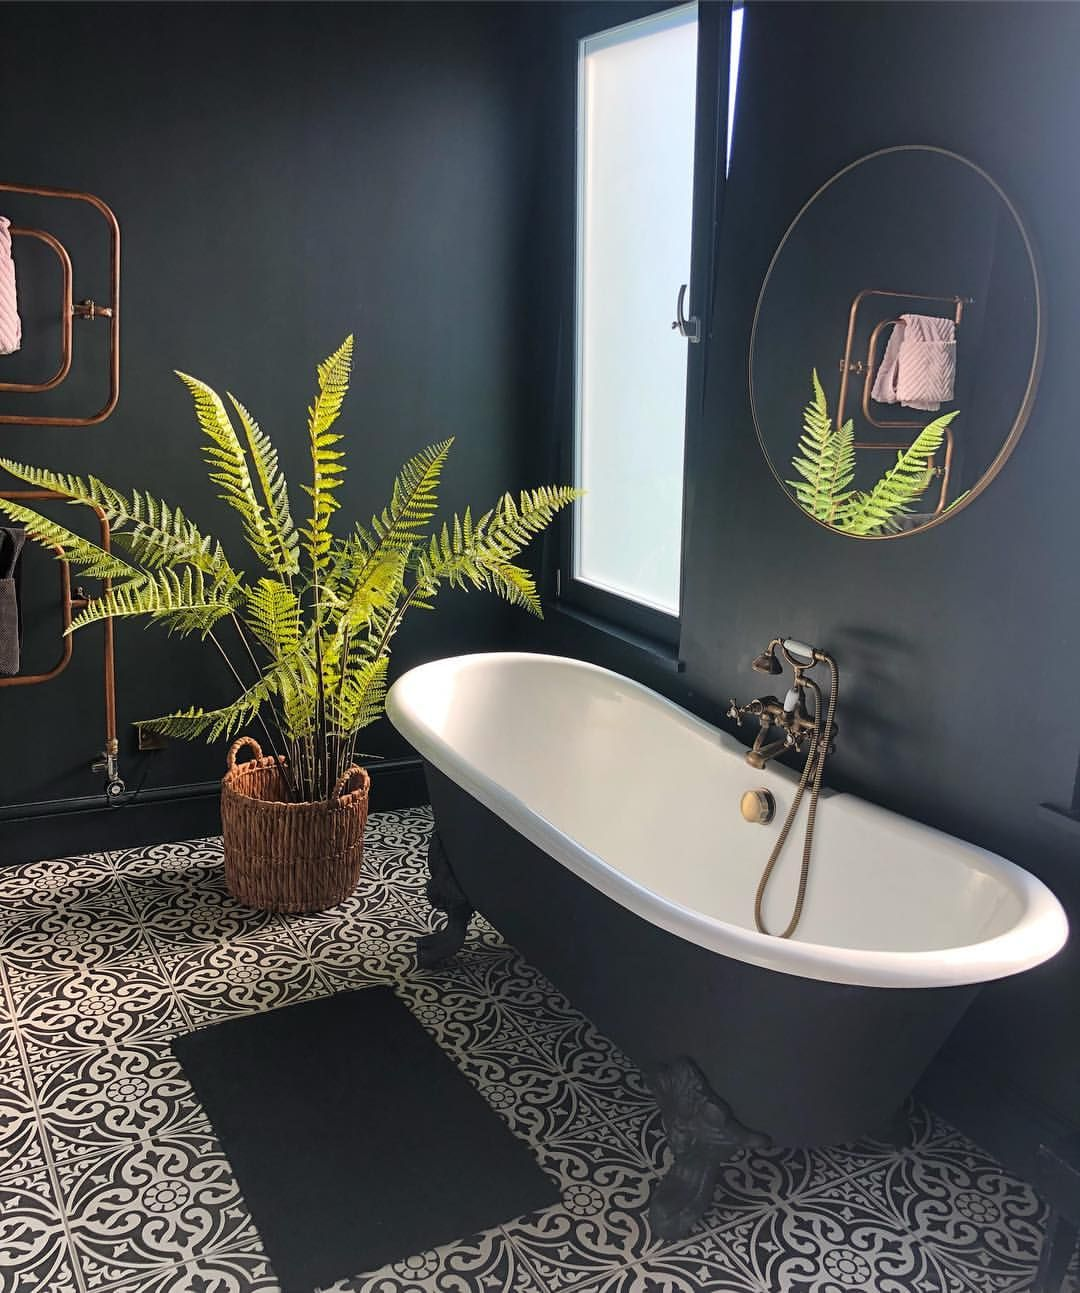 Favourite Bathroom Home Decor: This Is My Favourite Room In The House, But Now My